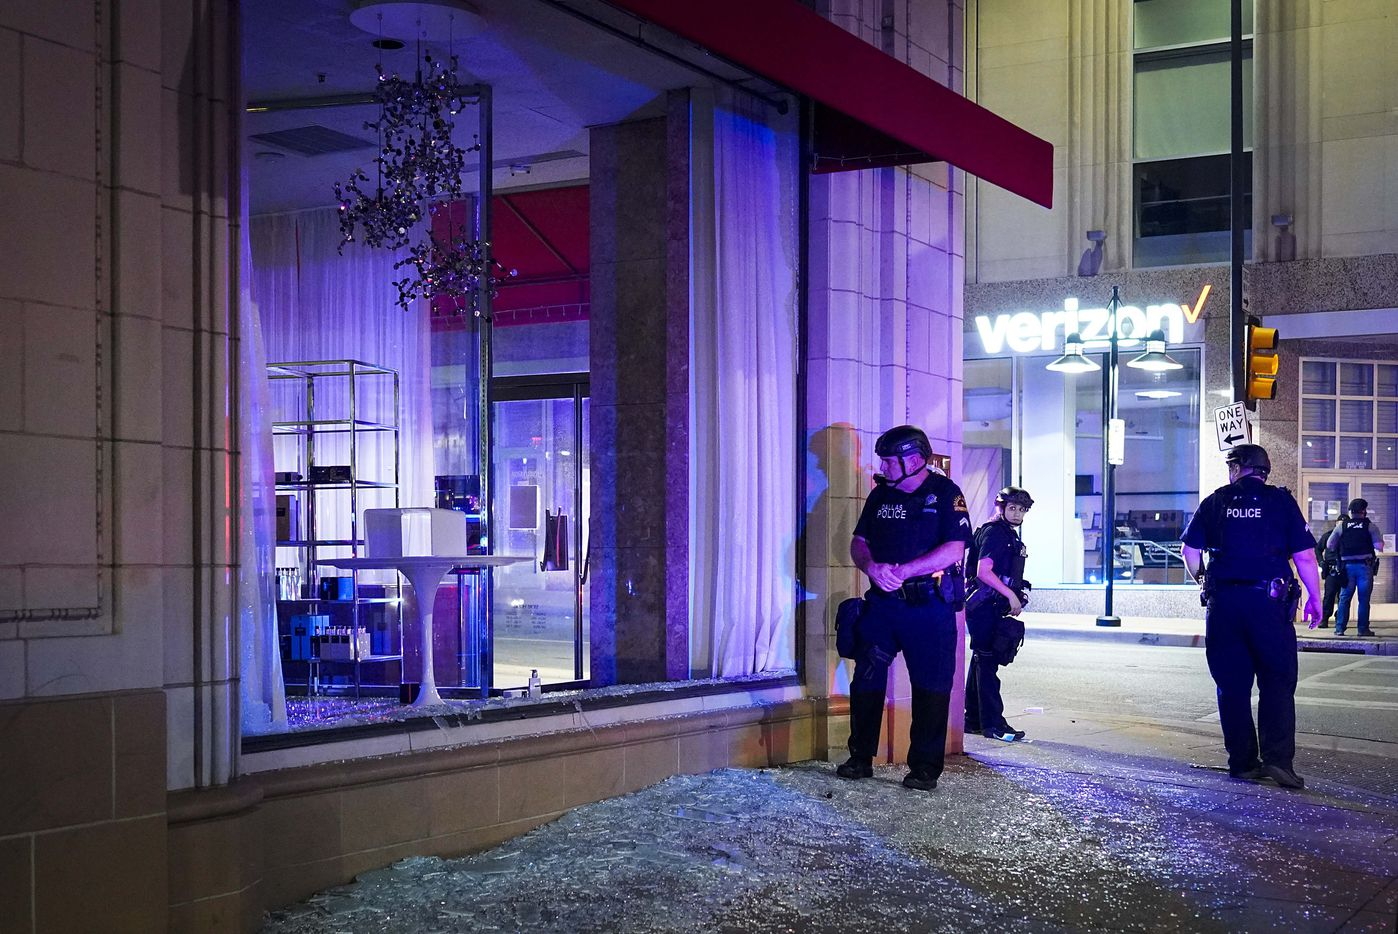 Dallas police stand guard amidst broken glass after windows were smashed at the Nieman Marcus store downtown following a protest against police brutality in the early morning hours of Saturday, May 30, 2020, in Dallas. The protest against police brutality was organized by Next Generation Action Network in response to the in-custody death of George Floyd in Minneapolis.